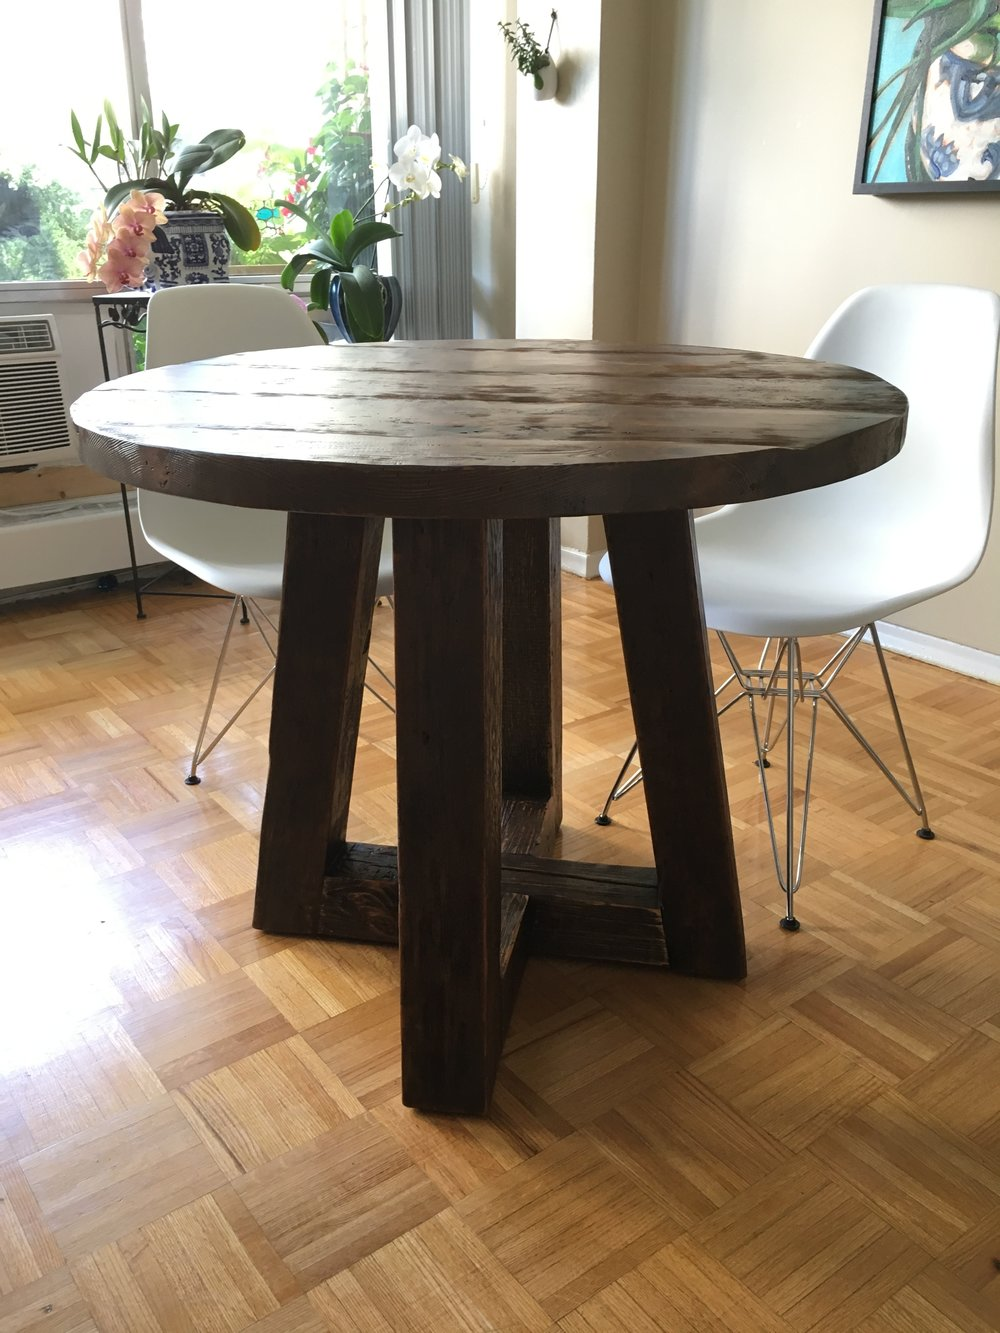 Reclaimed Wood Top with Custom Wood Base